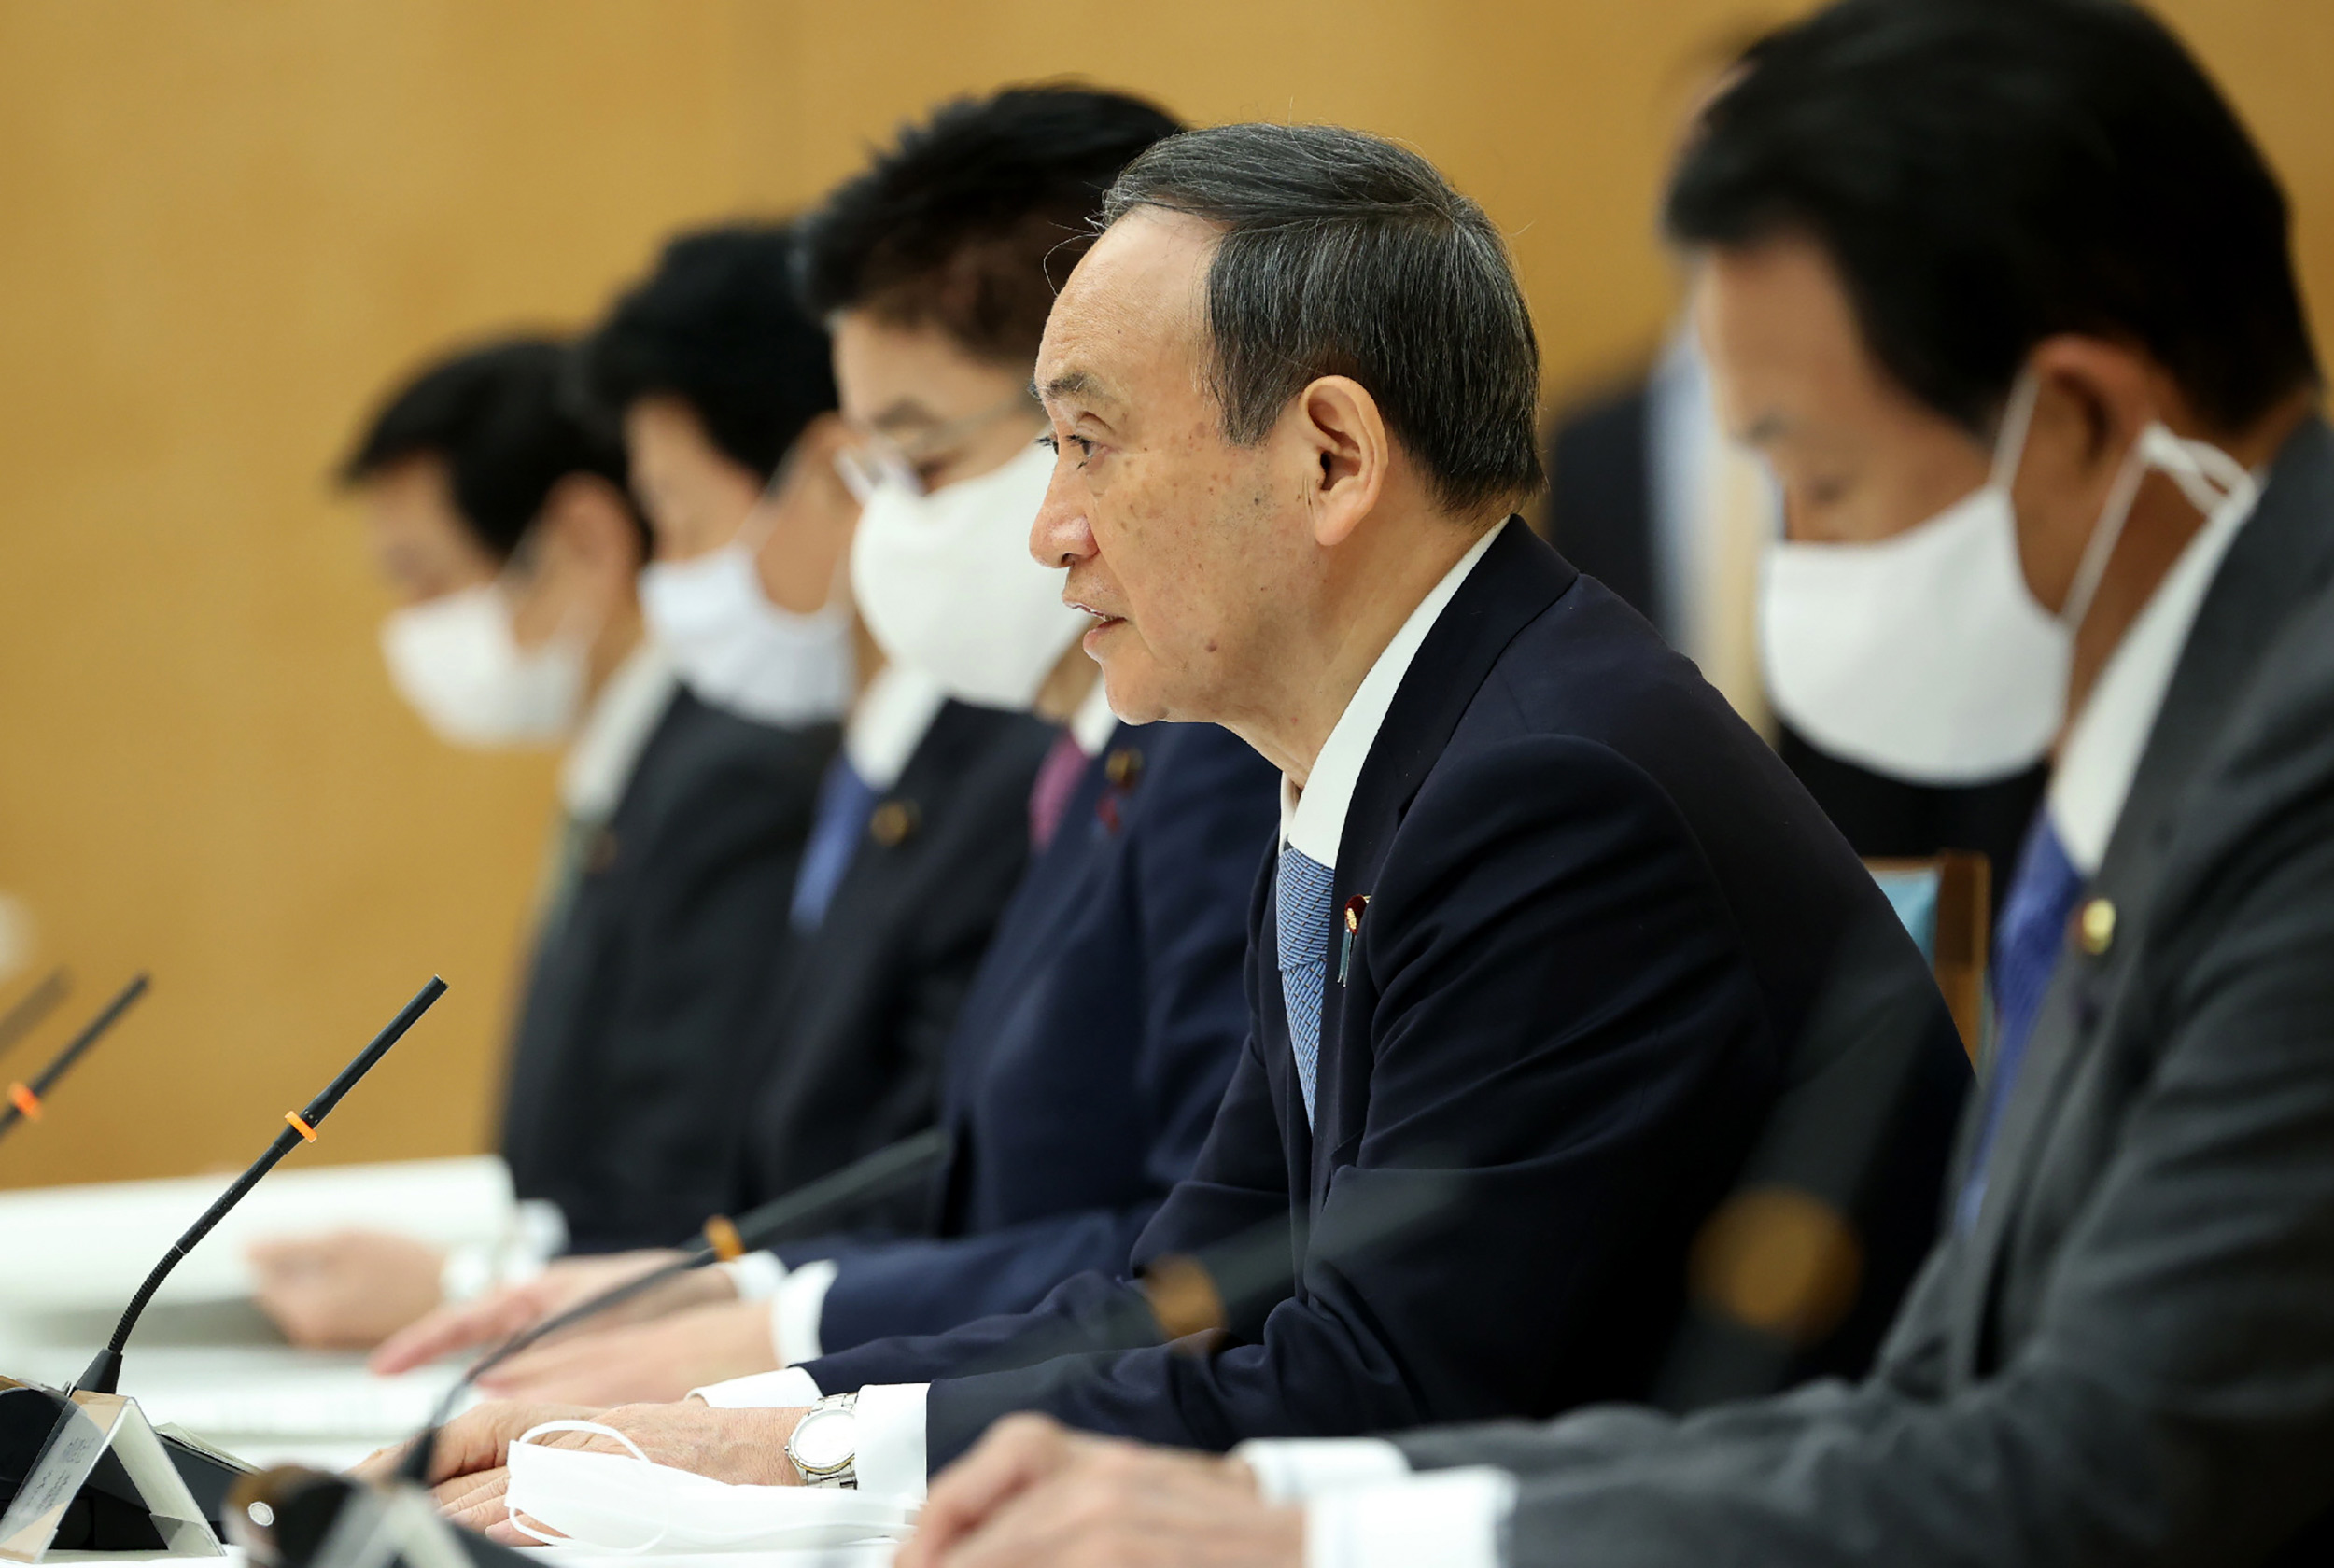 Japanese Prime Minister Yoshihide Suga, second from right, speaks at a meeting of the government and ruling parties policy at the prime minister's office in Tokyo on December 8.